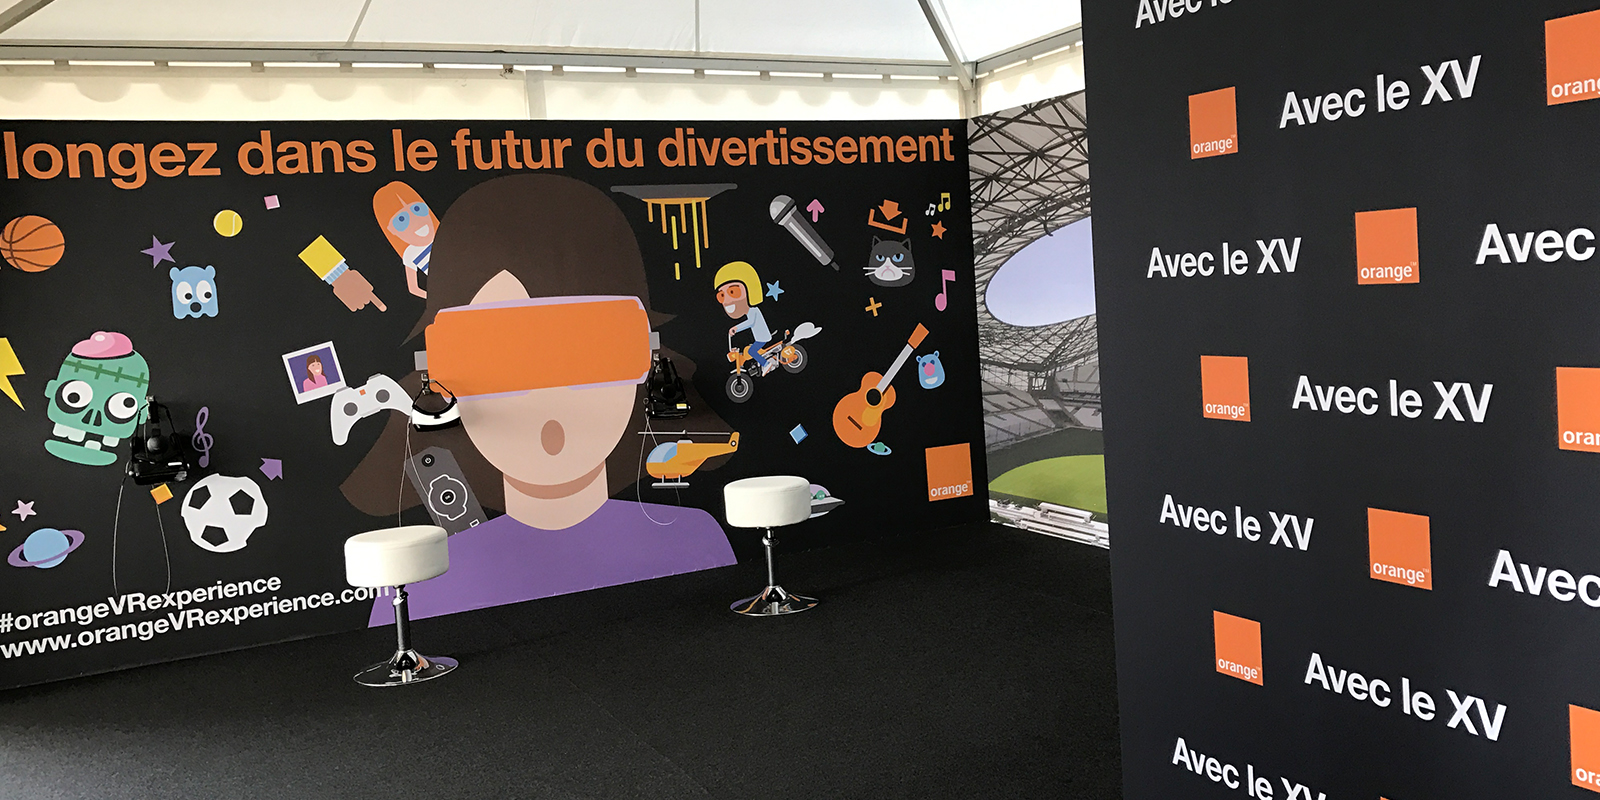 expace-stand-showroom-event-solutions-mobiles-banners-projets_0023_ORANGE-IMG_1899